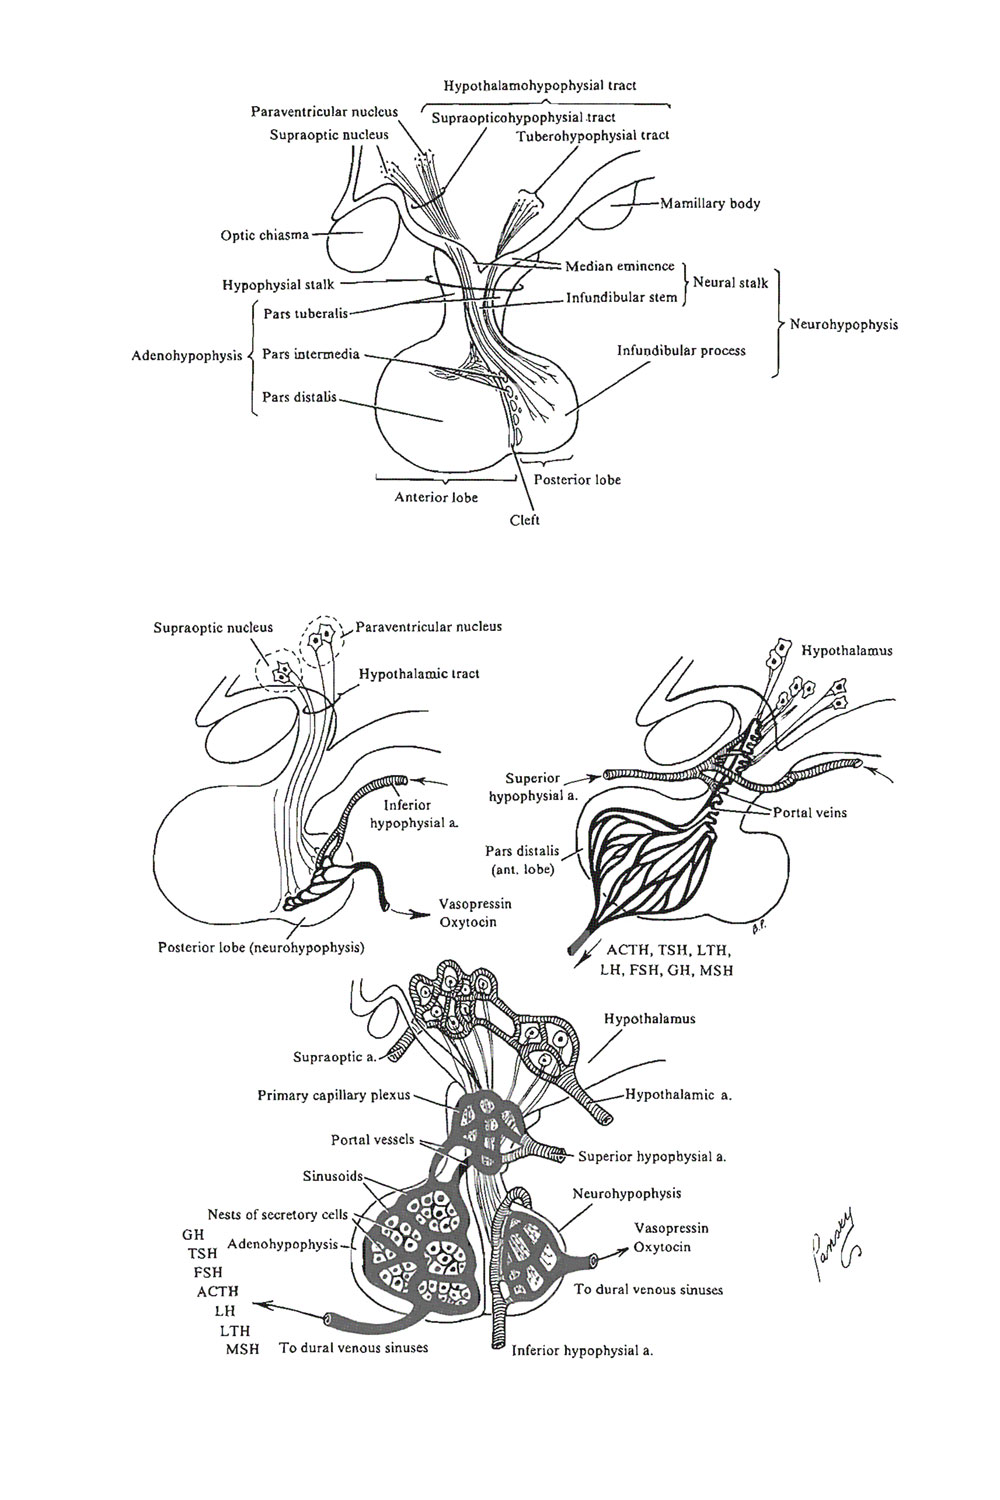 the hypophysis (pituitary gland):  neural primordium and portal system: image #1